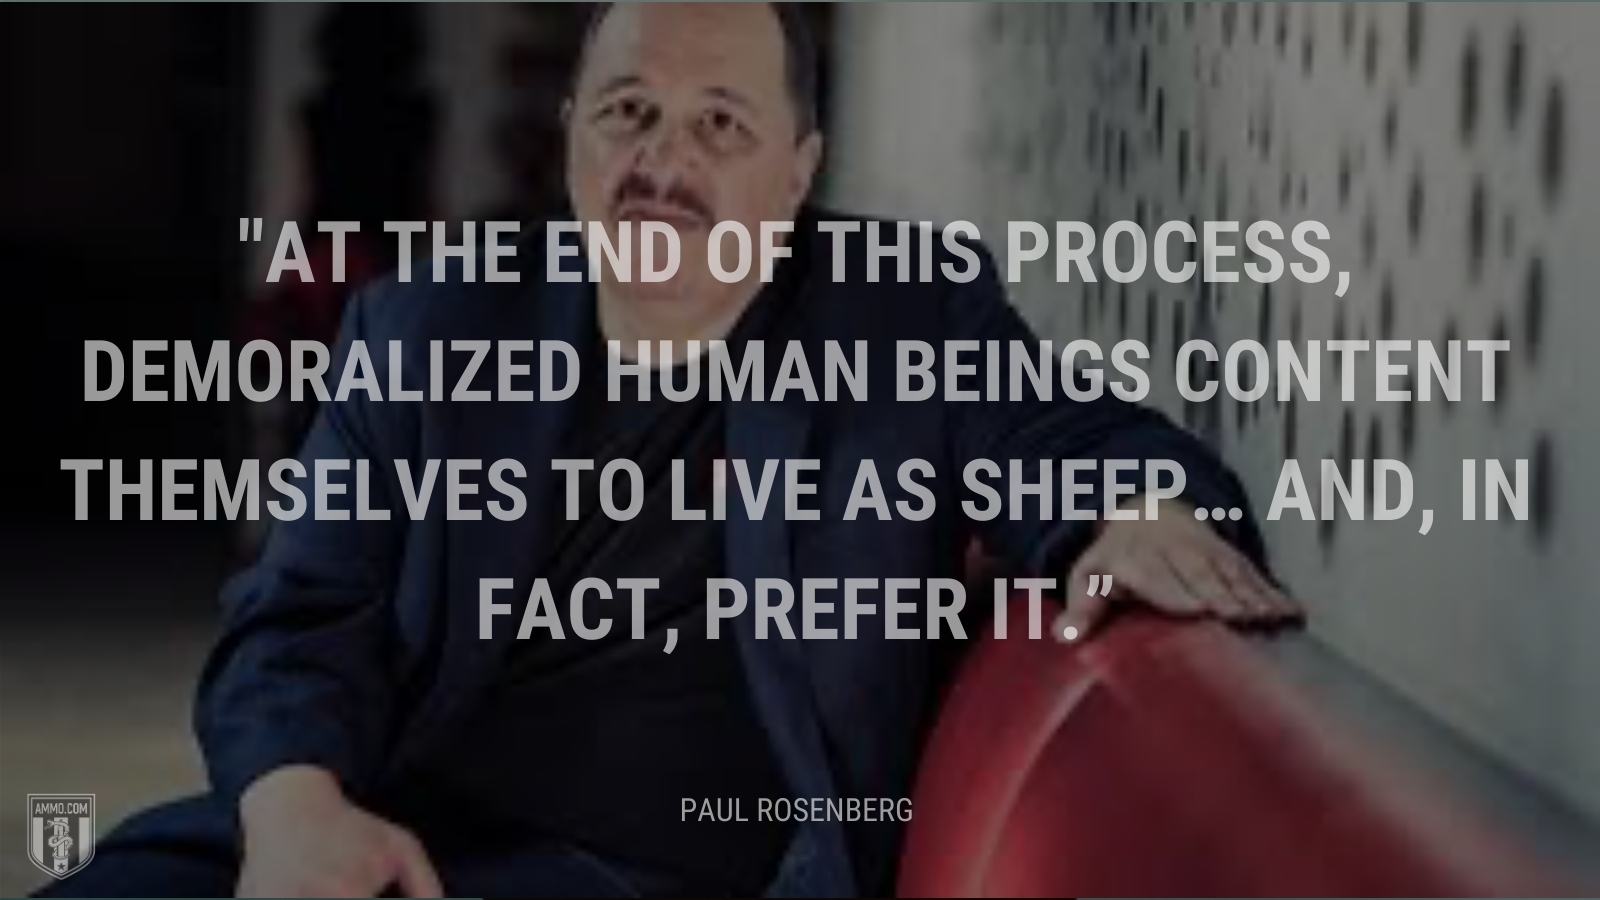 """""""At the end of this process, demoralized human beings content themselves to live as sheep… and, in fact, prefer it."""" - Paul Rosenberg"""